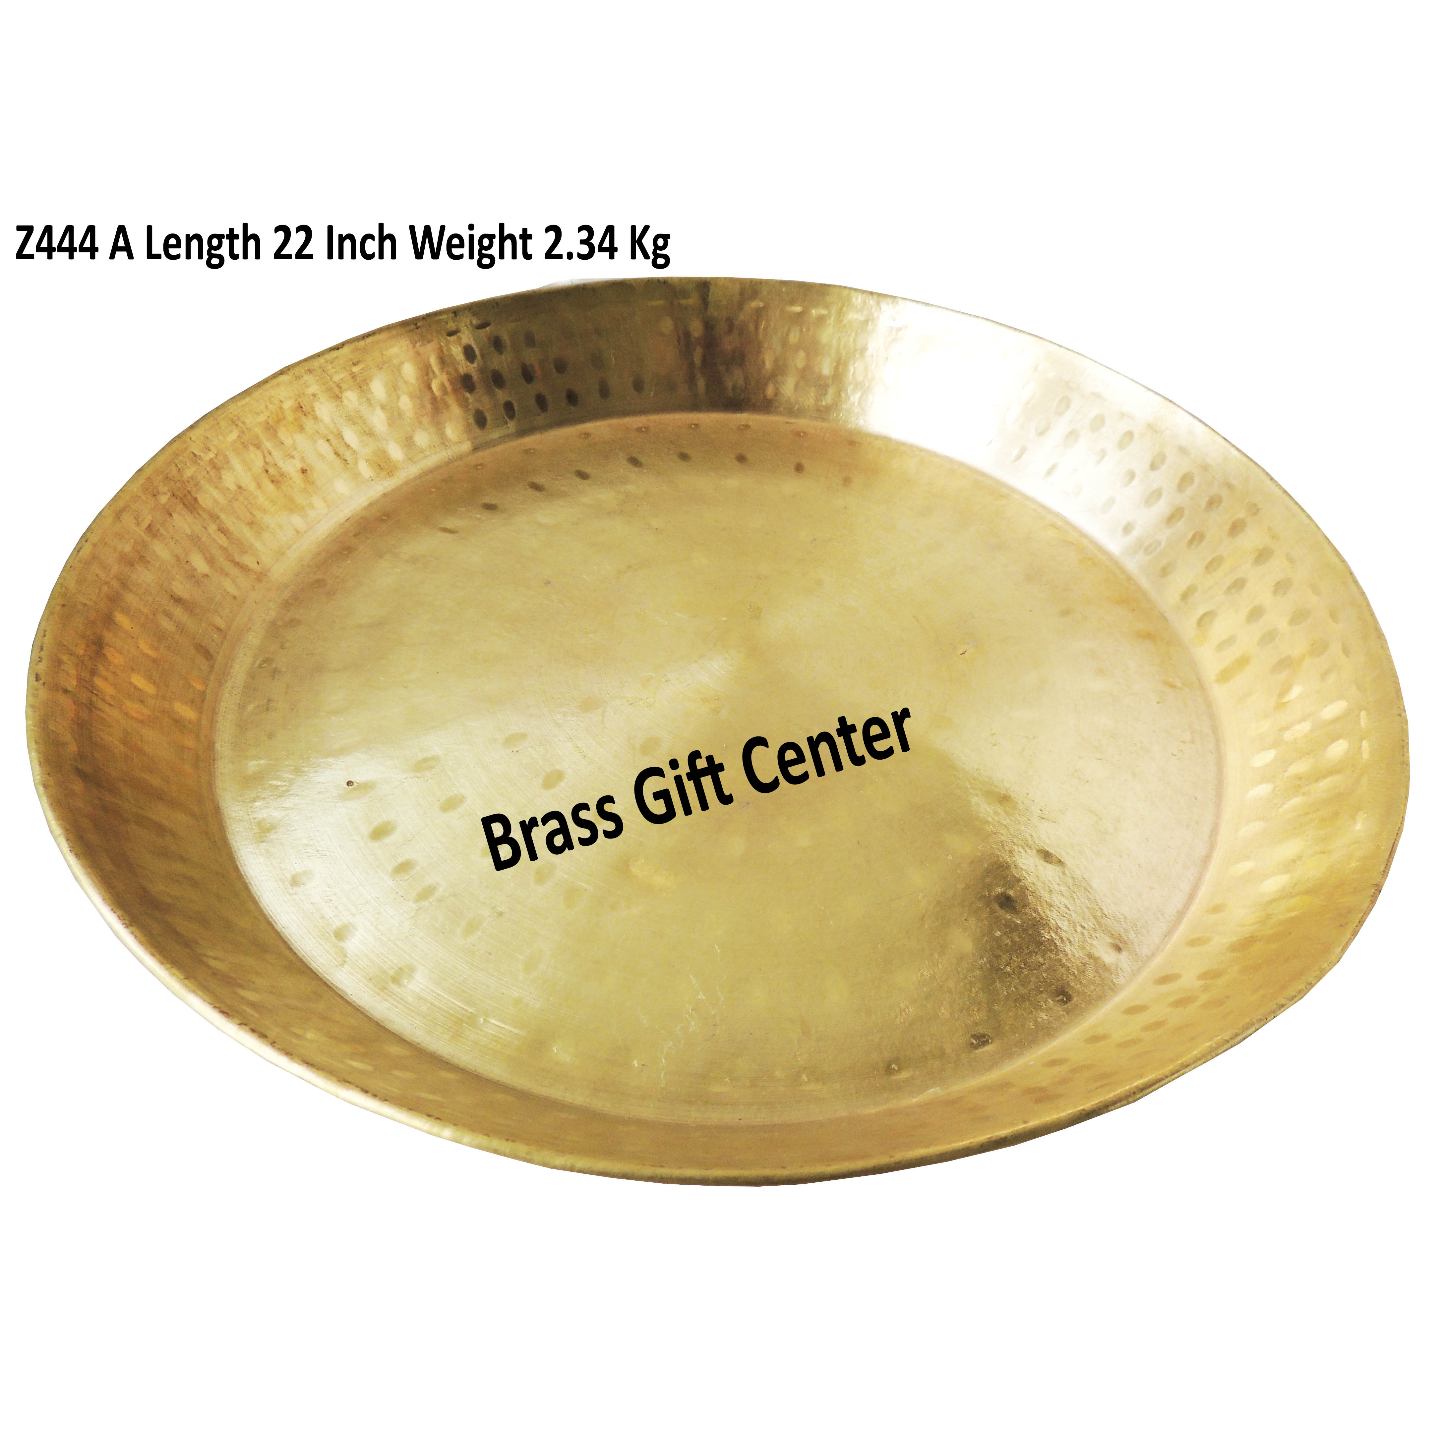 Brass Thaal With Brass Finish Diameter 22 Inch (Z444 A)